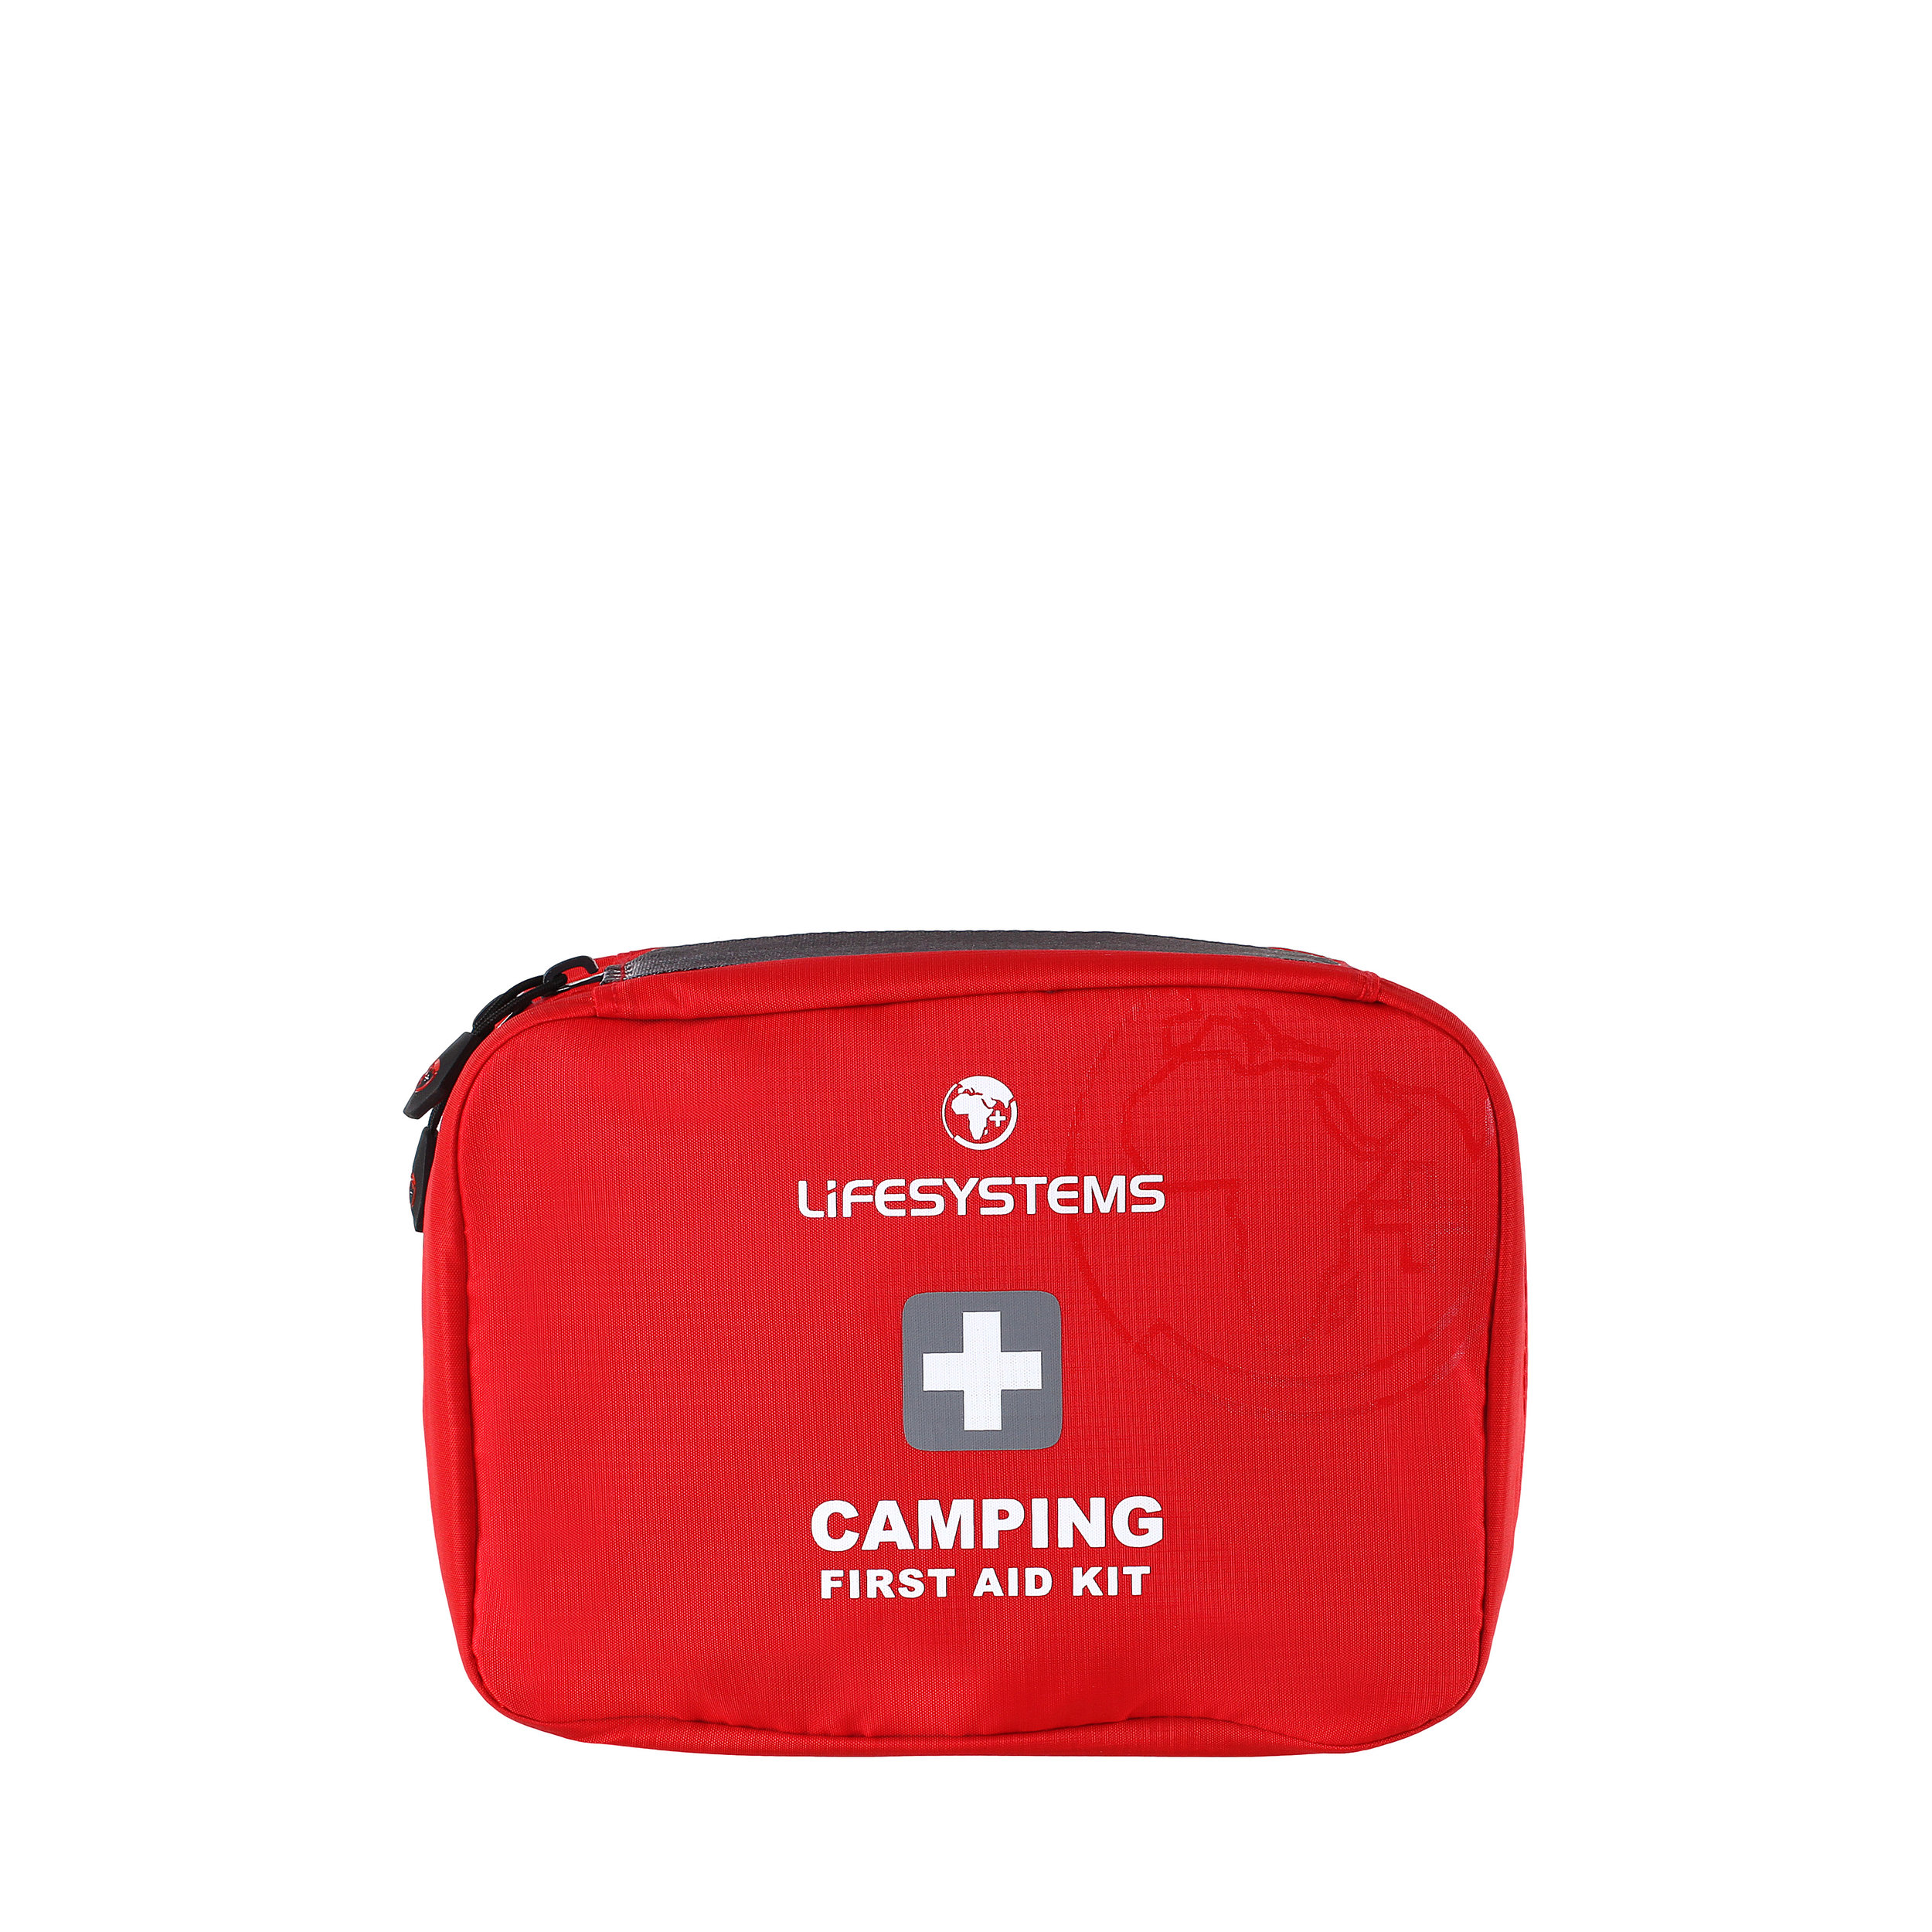 Lifesystems Camping First Aid Kit  (2).jpg